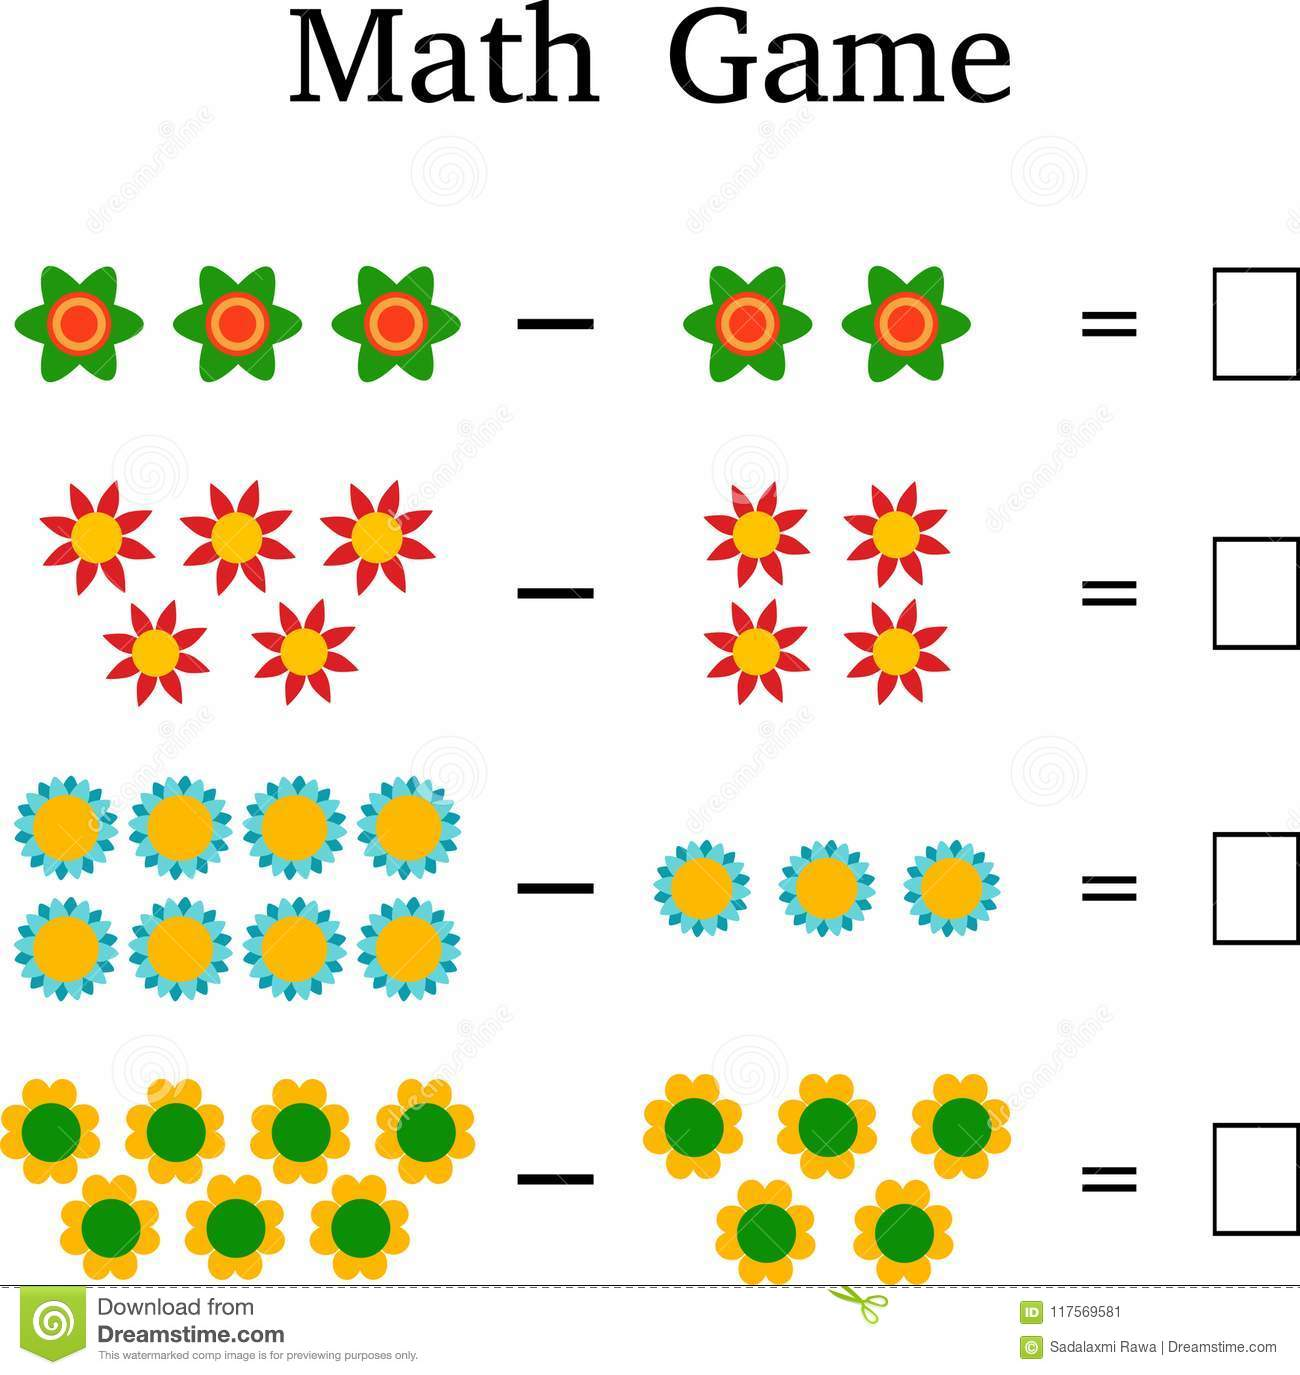 Maths Area Games For Kids